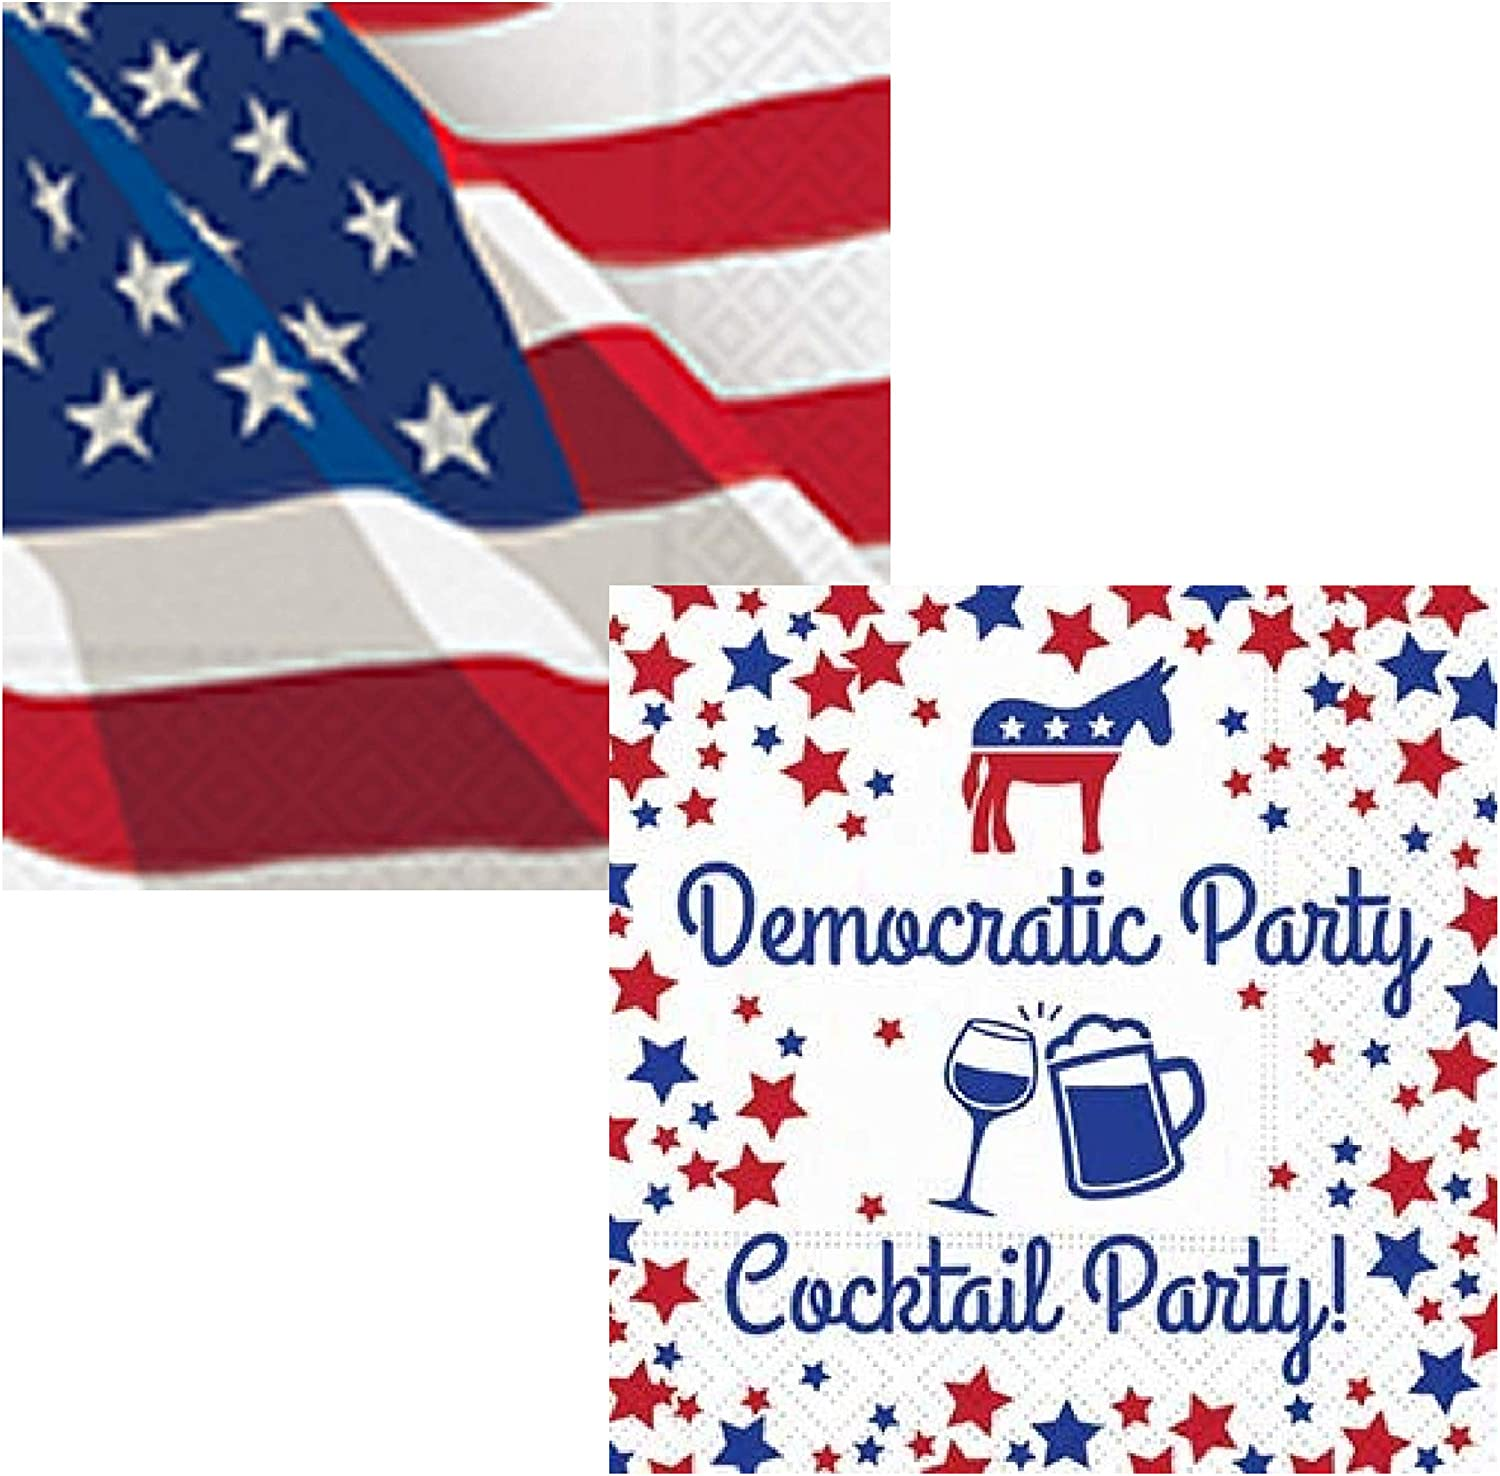 Democratic Party Red White and Blue Cocktail Beverage Napkins - Bundle Includes 40 Total Paper Napkins in 2 Different Patriotic Political Designs